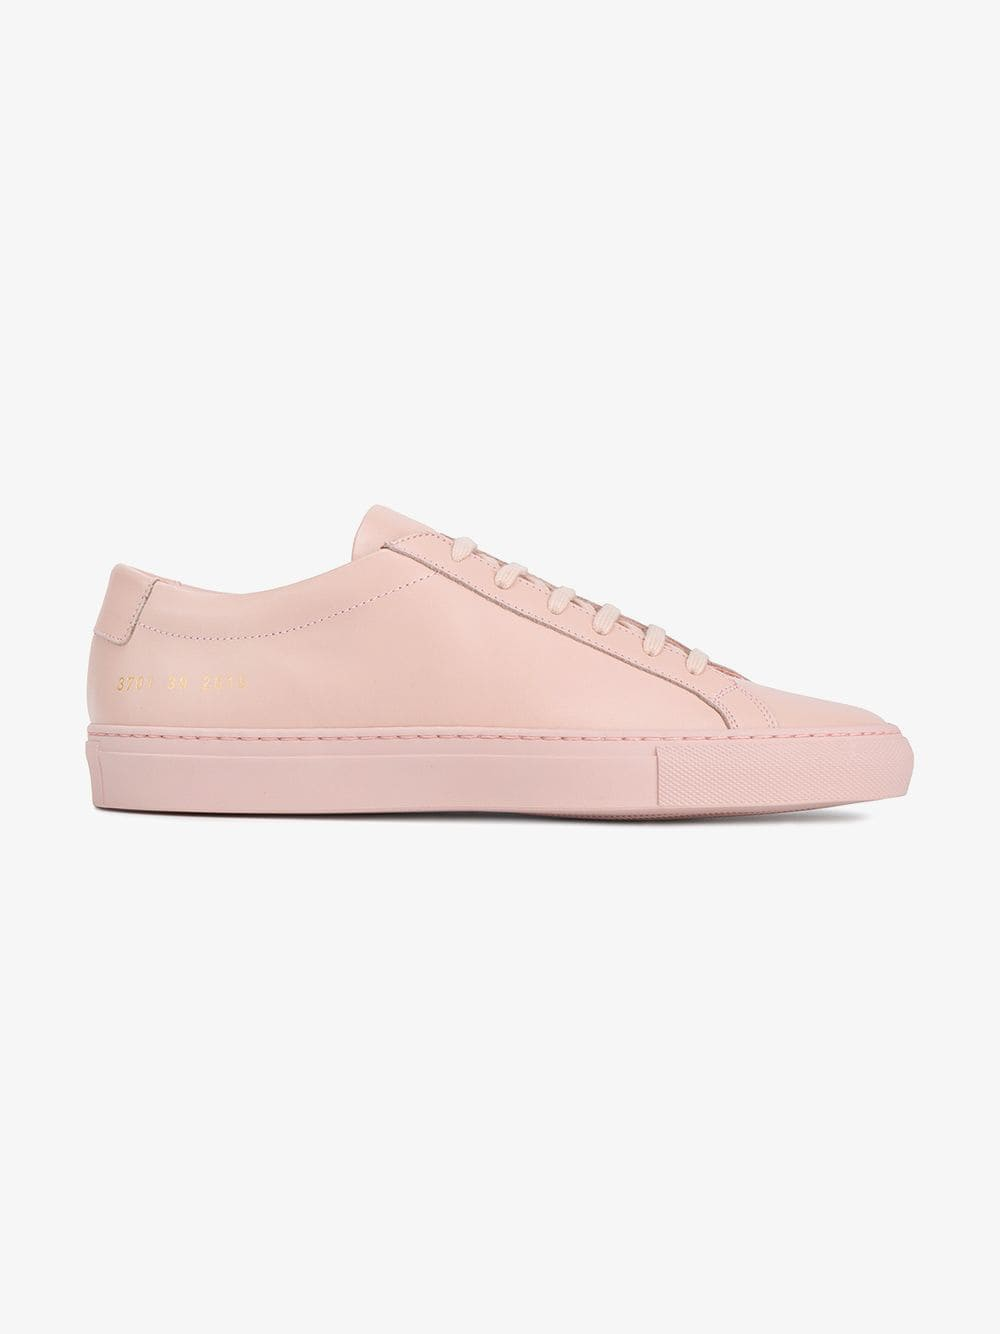 Common Projects Achilles Low sneakers in pink / purple